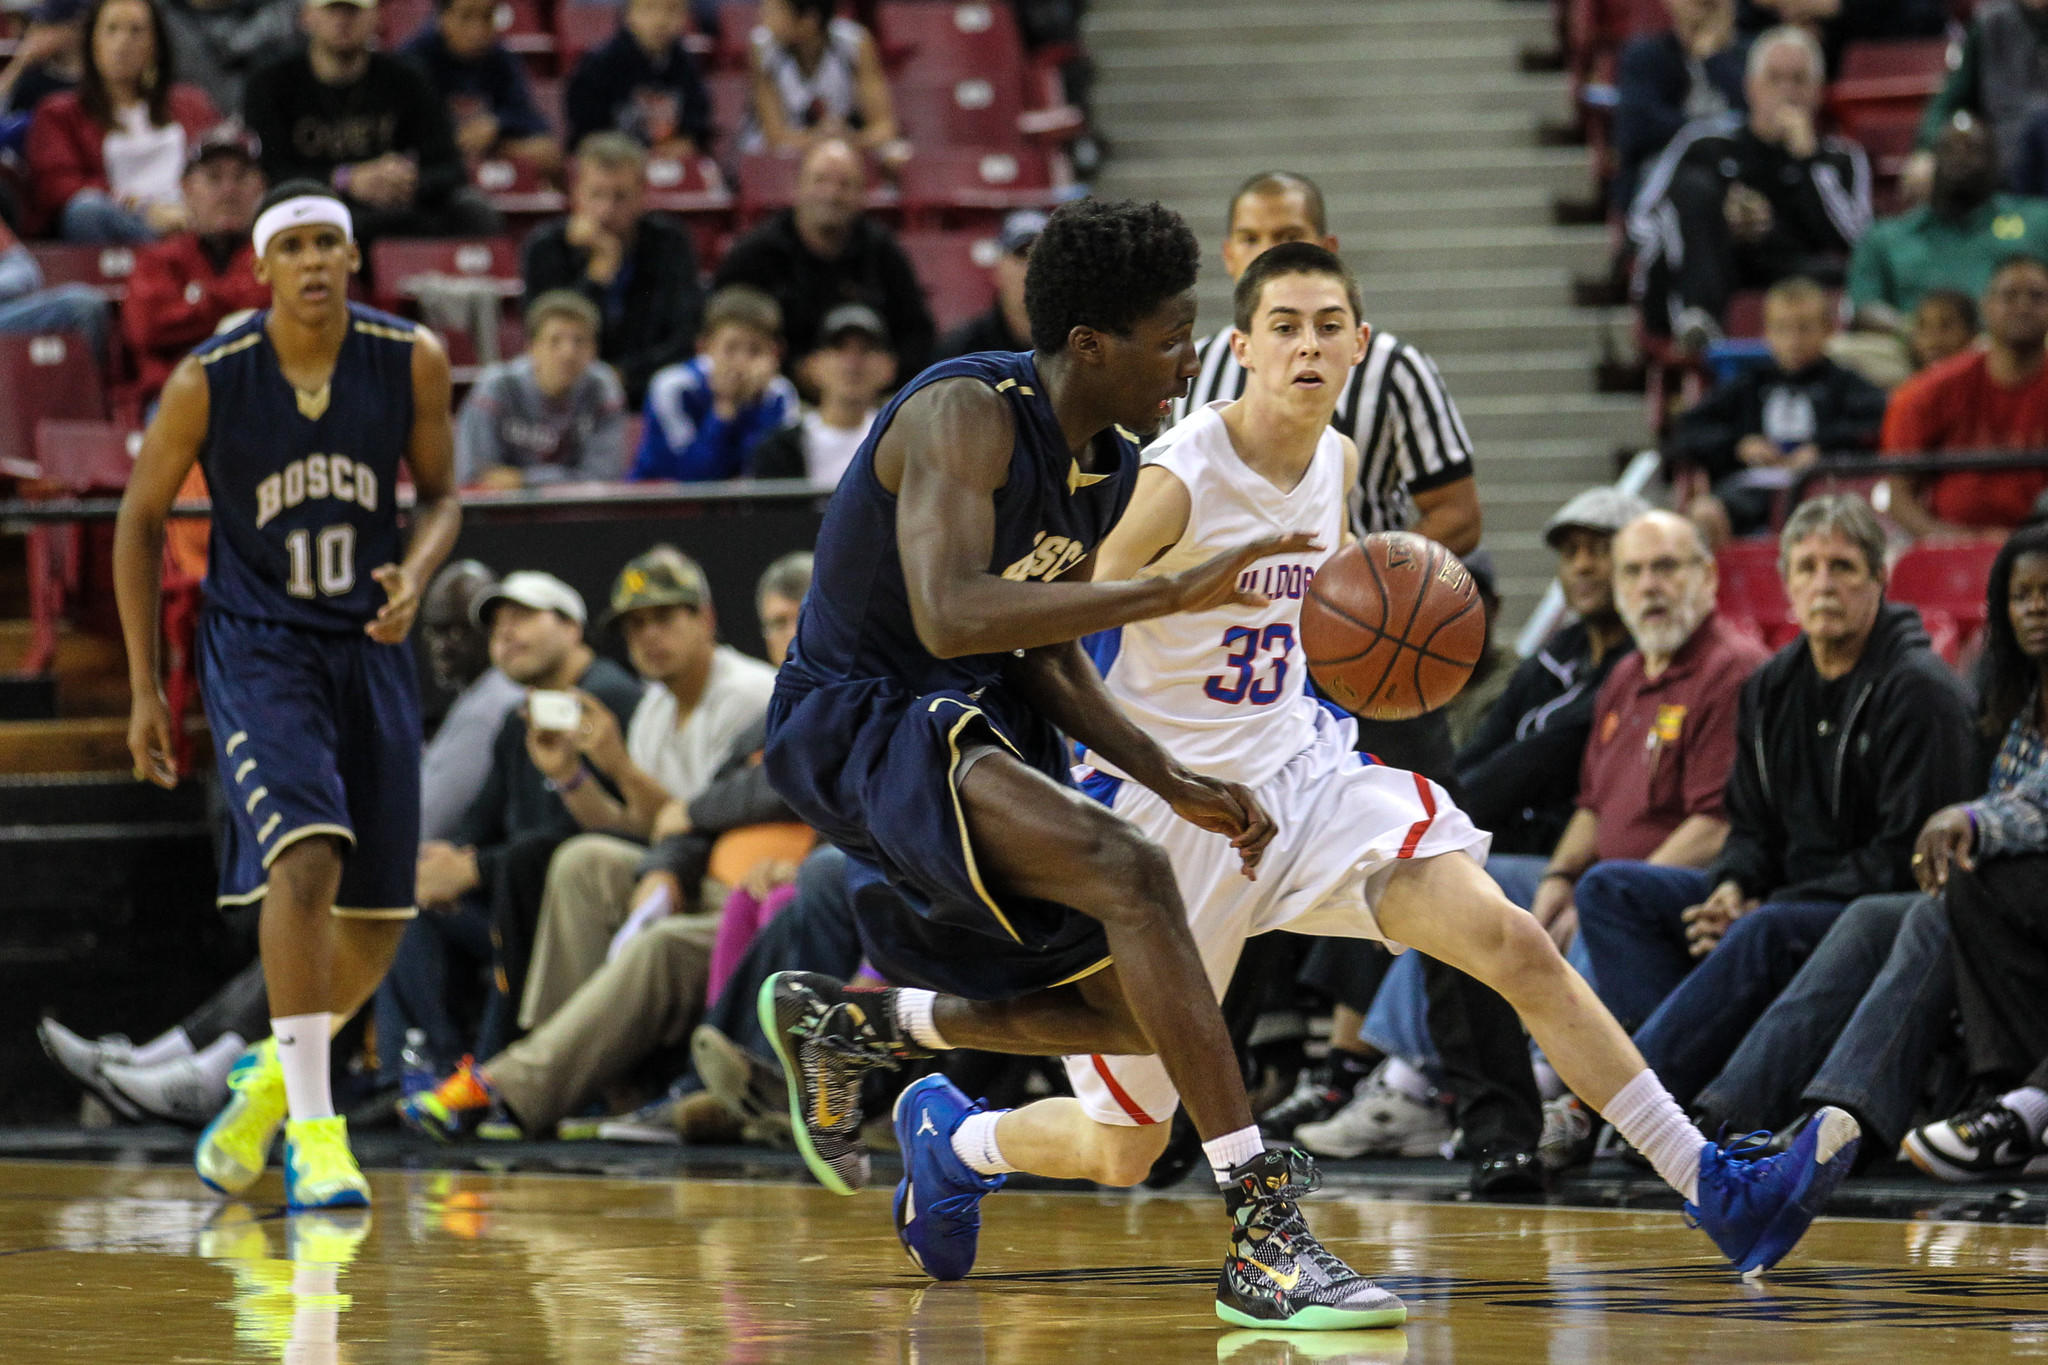 St. John Bosco forward Daniel Hamilton (left) is guarded by Folsom's Alec Andrews in the first half of the Division II state final at Sleep Train Arena in Sacramento.